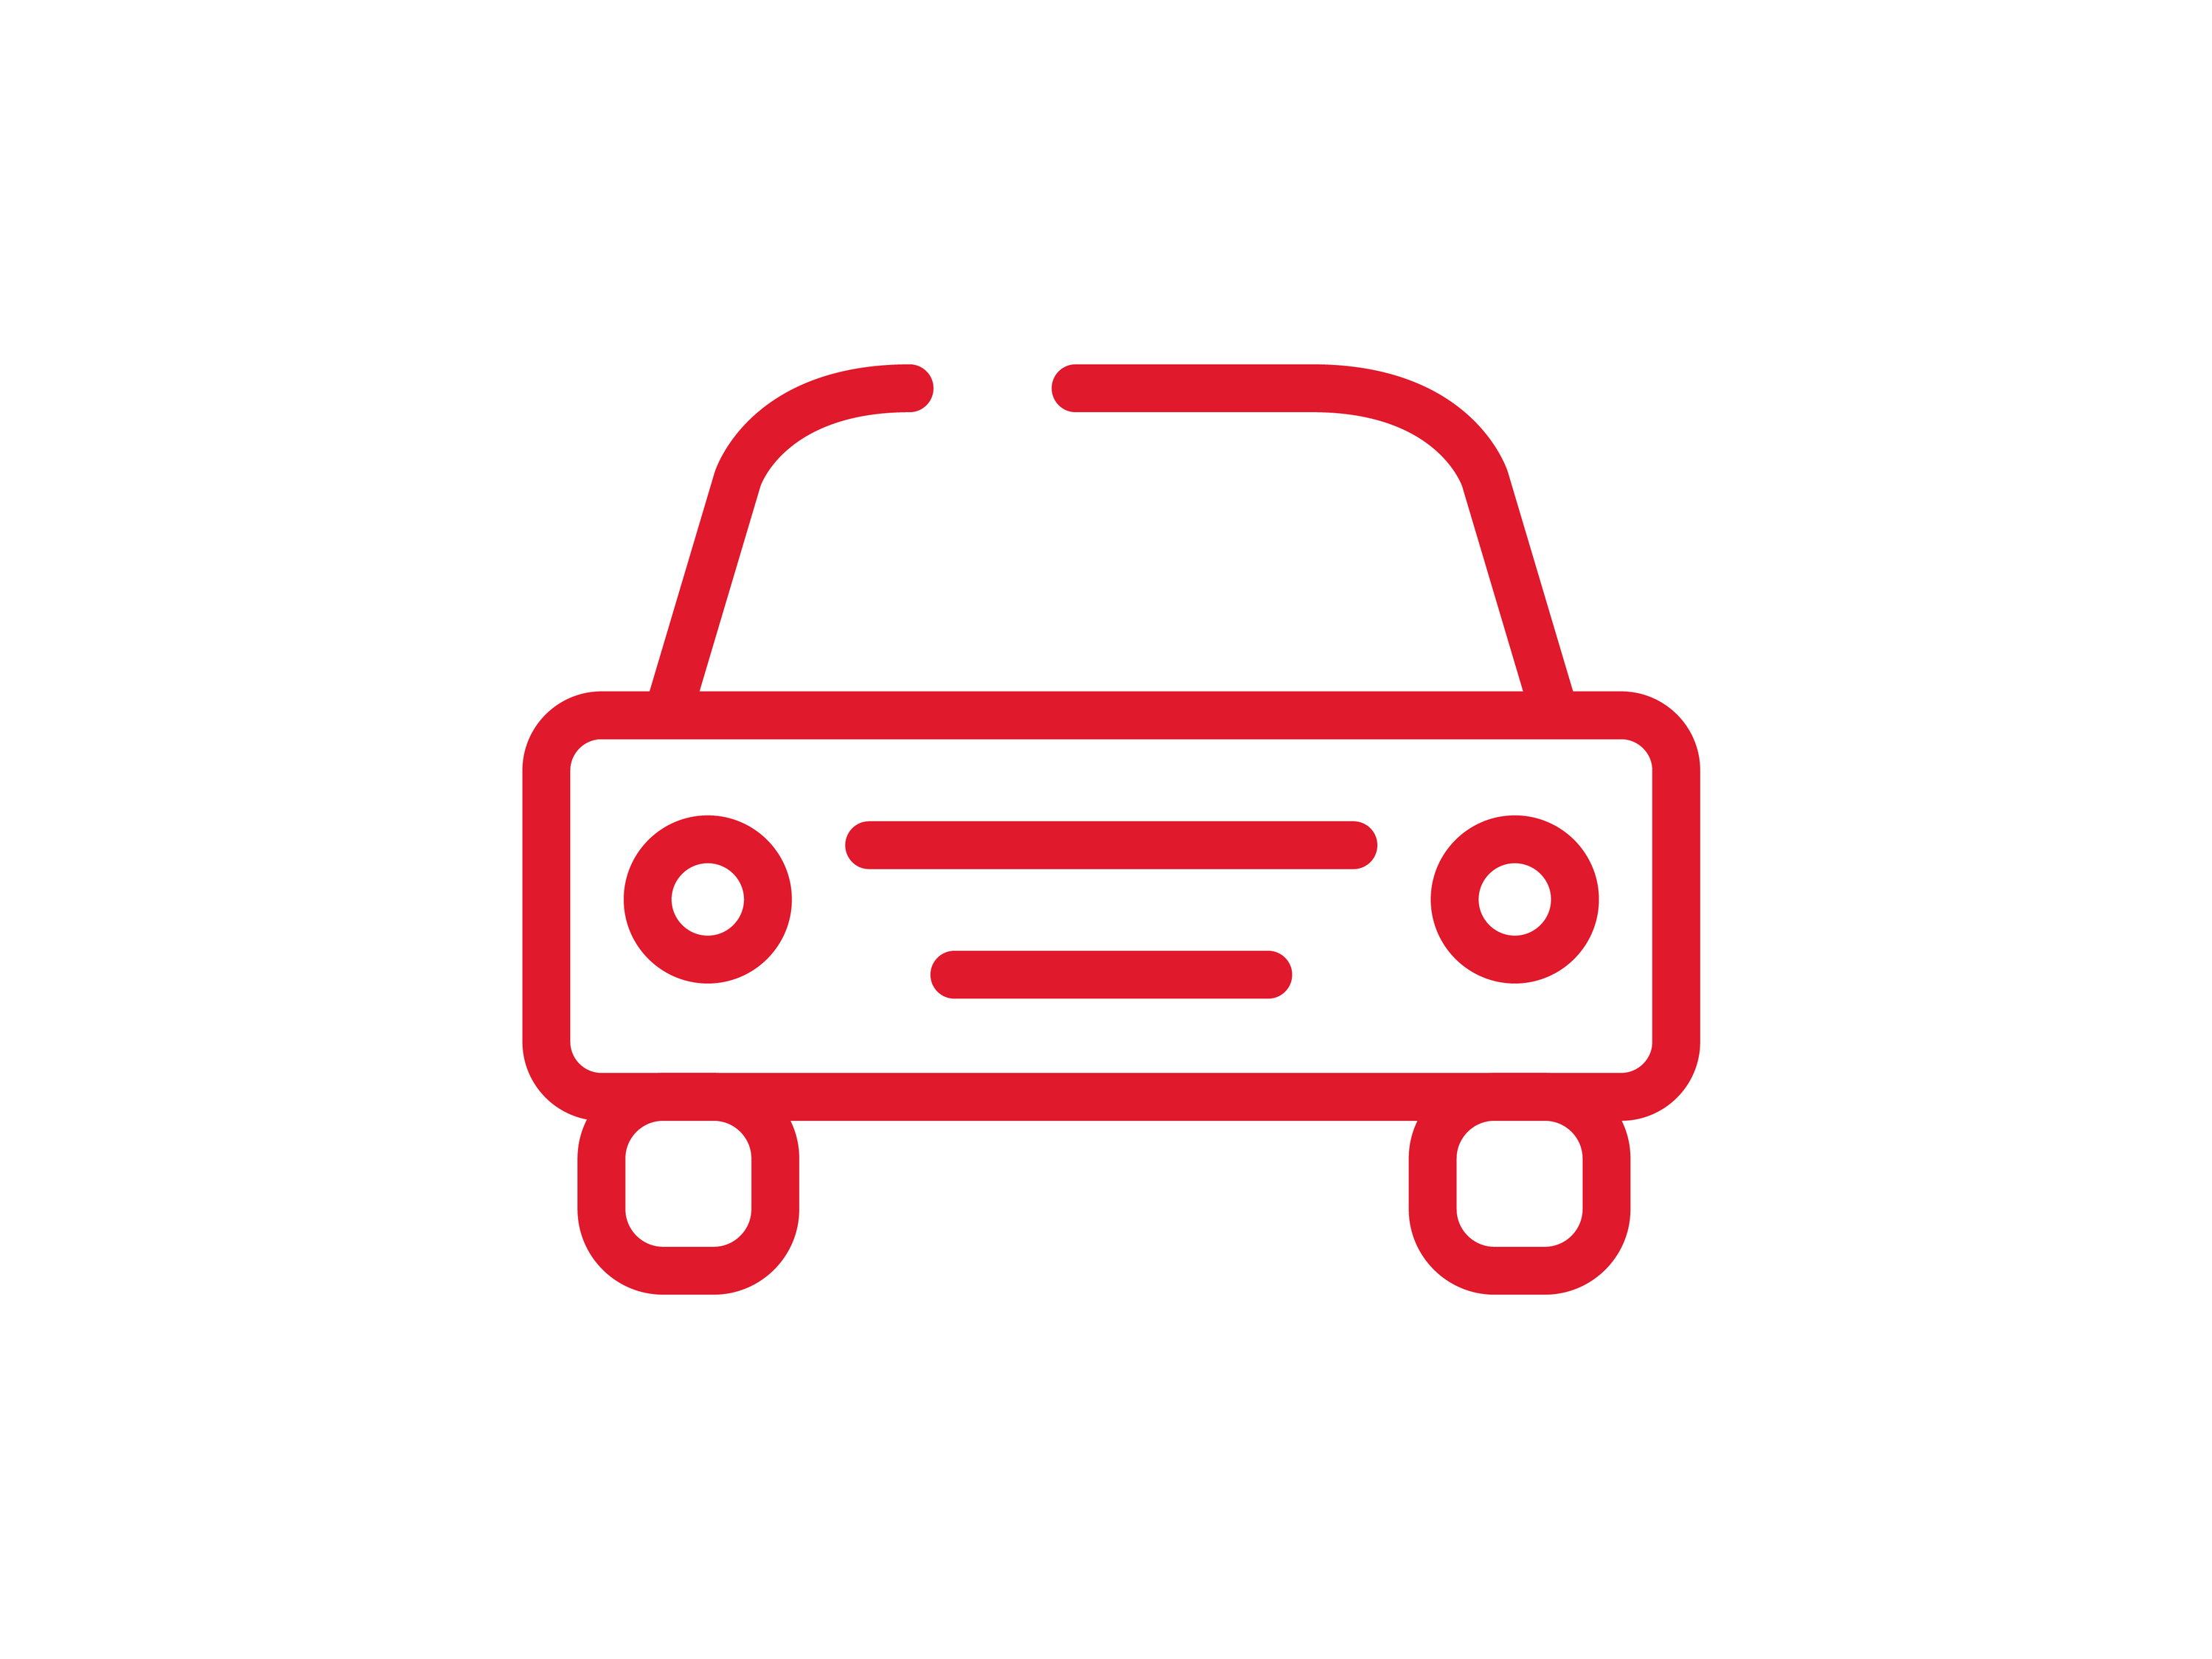 A illustrated icon of a car